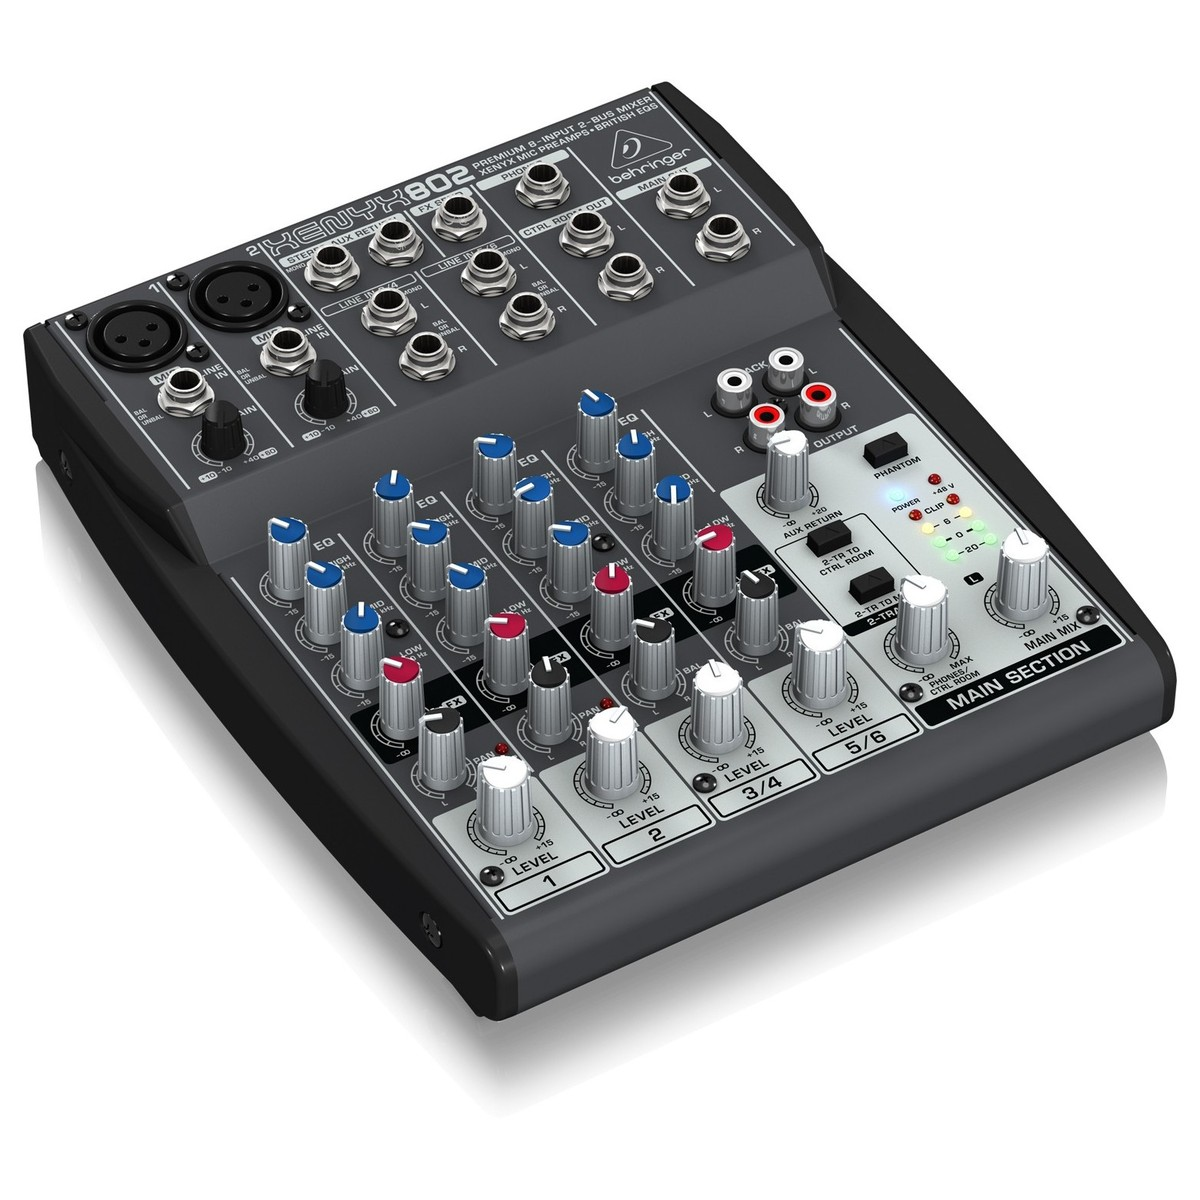 Behringer xenyx 802 table de mixage gear4music - Table de mixage behringer ...